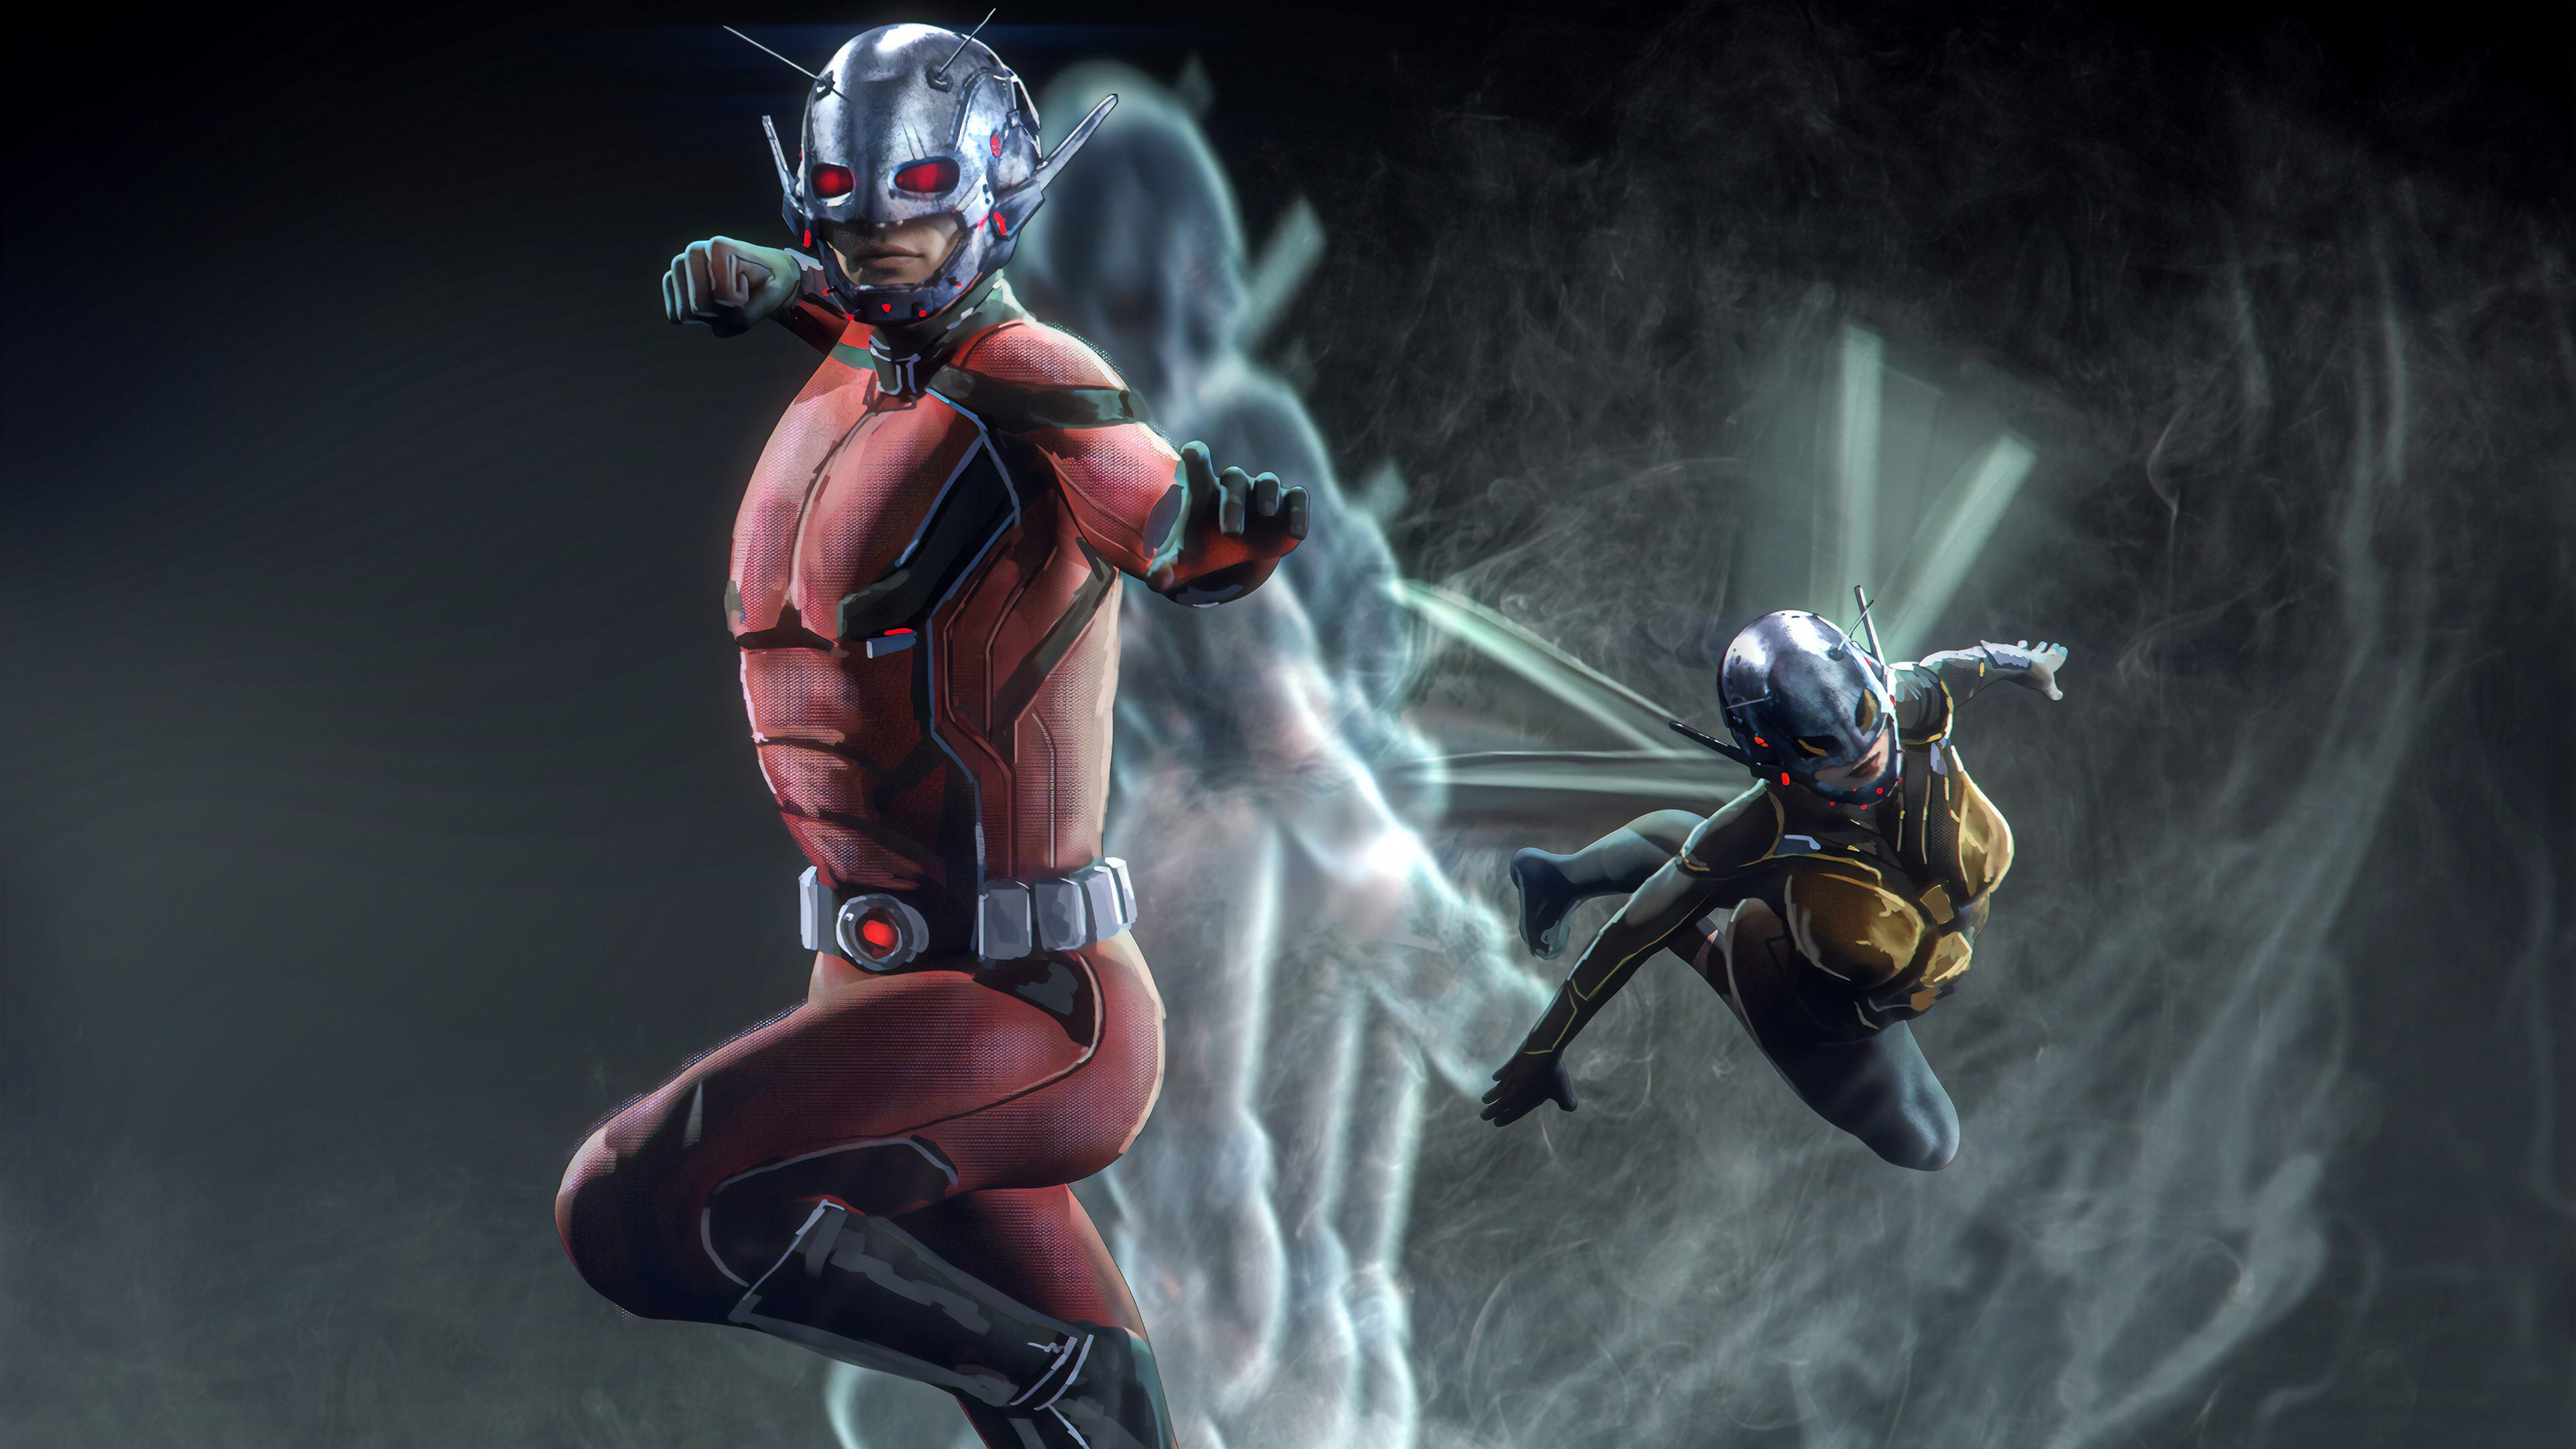 ant man and wasp marvel superheroes 1565052760 - Ant Man And Wasp Marvel Superheroes - wasp wallpapers, superheroes wallpapers, marvel wallpapers, hd-wallpapers, artstation wallpapers, ant man wallpapers, 4k-wallpapers